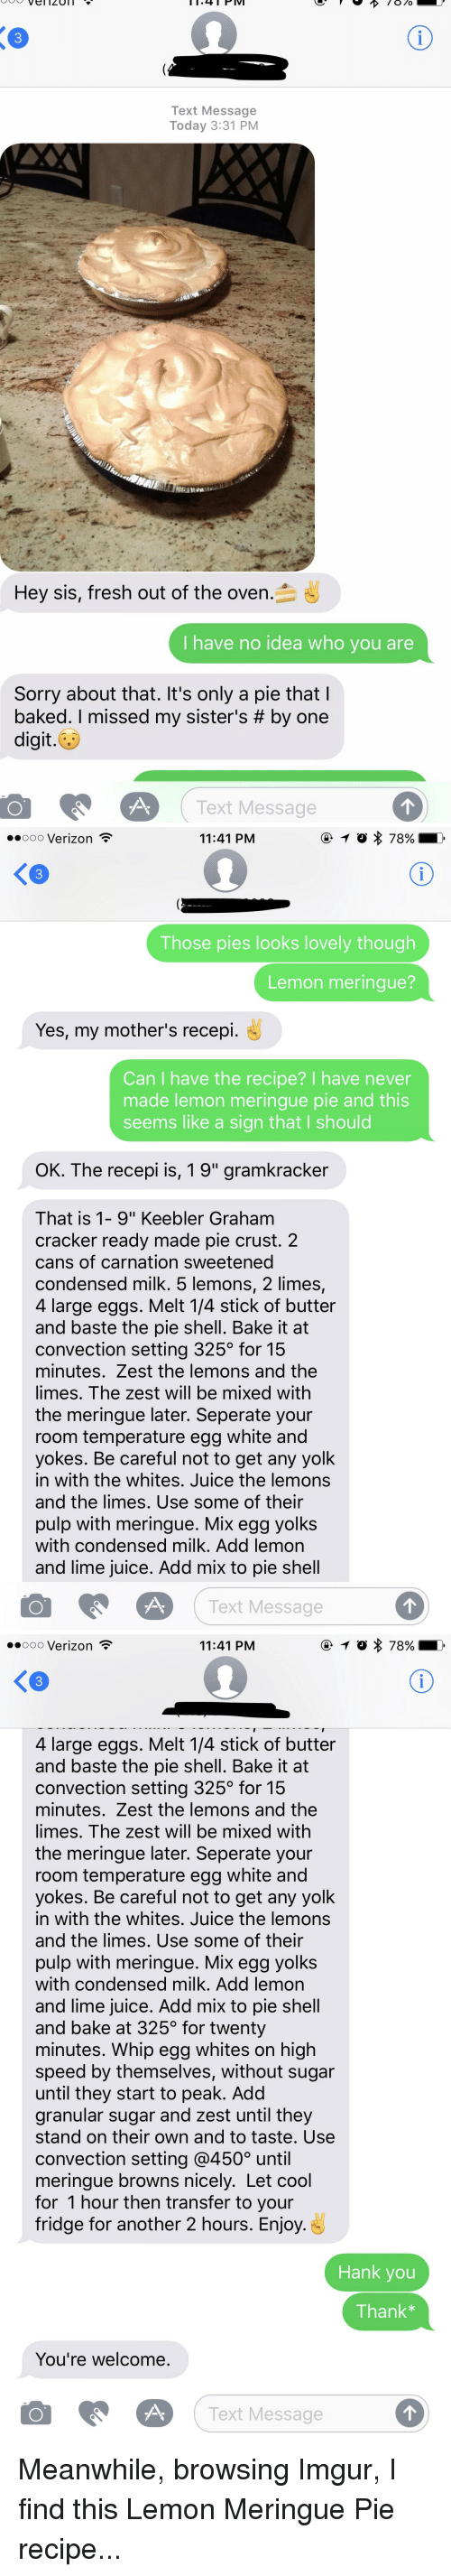 """Oldpeoplefacebook, Shell, and Fridge: Vel 4 PM  PIV  Text Message  Today 3:31 PM  Hey sis, fresh out of the oven  I have no idea who you are  Sorry about that. It's only a pie that  baked. missed my sister's by one  digit.  O Text Message   ooooo Verizon  11:41 PM  Those pies looks lovely though  Lemon meringue?  Yes, my mother's recepi.  Can have the recipe? I have never  made lemon meringue pie and this  seems like a sign that l should  OK. The recepi is, 19"""" gramkracker  That is 1- 9"""" Keebler Graham  cracker ready made pie crust. 2  cans of carnation sweetened  condensed milk. 5 lemons, 2 limes,  4 large eggs. Melt 14 stick of butter  and baste the pie shell. Bake it at  convection setting 325 for 15  minutes. Zest the lemons and the  limes. The zest will be mixed with  the meringue later. Seperate your  room temperature egg white and  yokes. Be careful not to get any yolk  in with the whites. Juice the lemons  and the limes. Use some of their  pulp with meringue. Mix egg yolks  with condensed milk. Add lemon  and lime juice. Add mix to pie shell  O A Text Message   ooooo Verizon  11:41 PM  4 large eggs. Melt 14 stick of butter  and baste the pie shell. Bake it at  convection setting 325 for 15  minutes. Zest the lemons and the  limes. The zest will be mixed with  the meringue later. Seperate your  room temperature egg white and  yokes. Be careful not to get any yolk  in with the whites. Juice the lemons  and the limes. Use some of their  pulp with meringue. Mix egg yolks  with condensed milk. Add lemon  and lime juice. Add mix to pie shell  and bake at 325 for twenty  minutes. Whip egg whites on high  speed by themselves, without sugar  until they start to peak. Add  granular sugar and zest until they  stand on their own and to taste. Use  convection setting @4500 until  meringue browns nicely. Let cool  for 1 hour then transfer to your  fridge for another 2 hours. Enjoy  Hank you  Thank  You're welcome  O A.  Text Message Meanwhile, browsing Imgur, I find this """